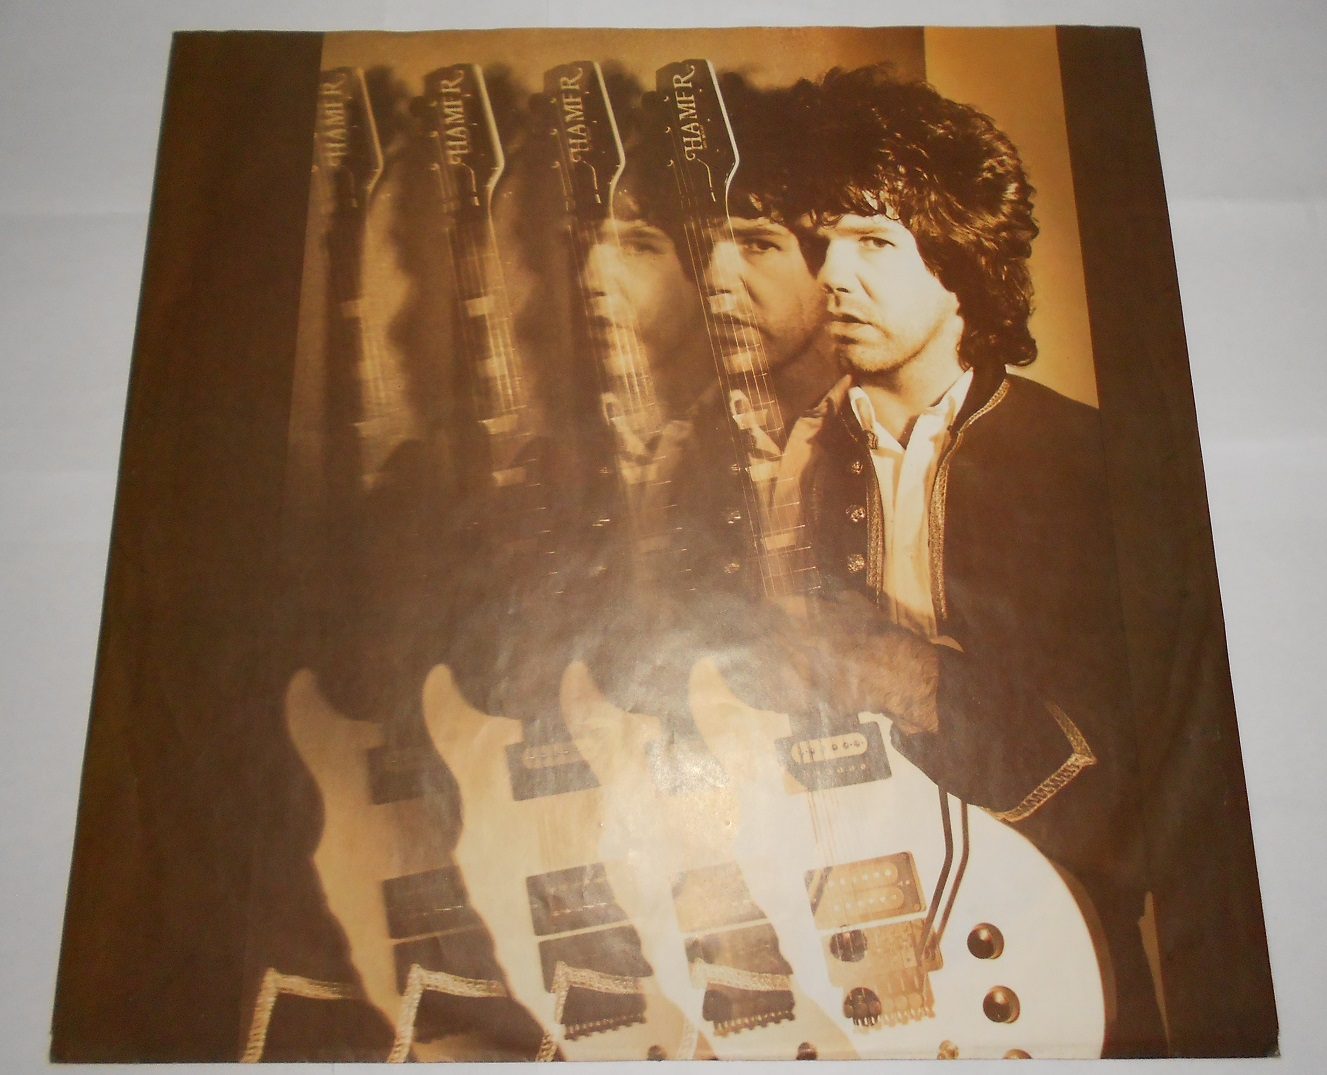 Gary Moore - Run For Cover (LP)